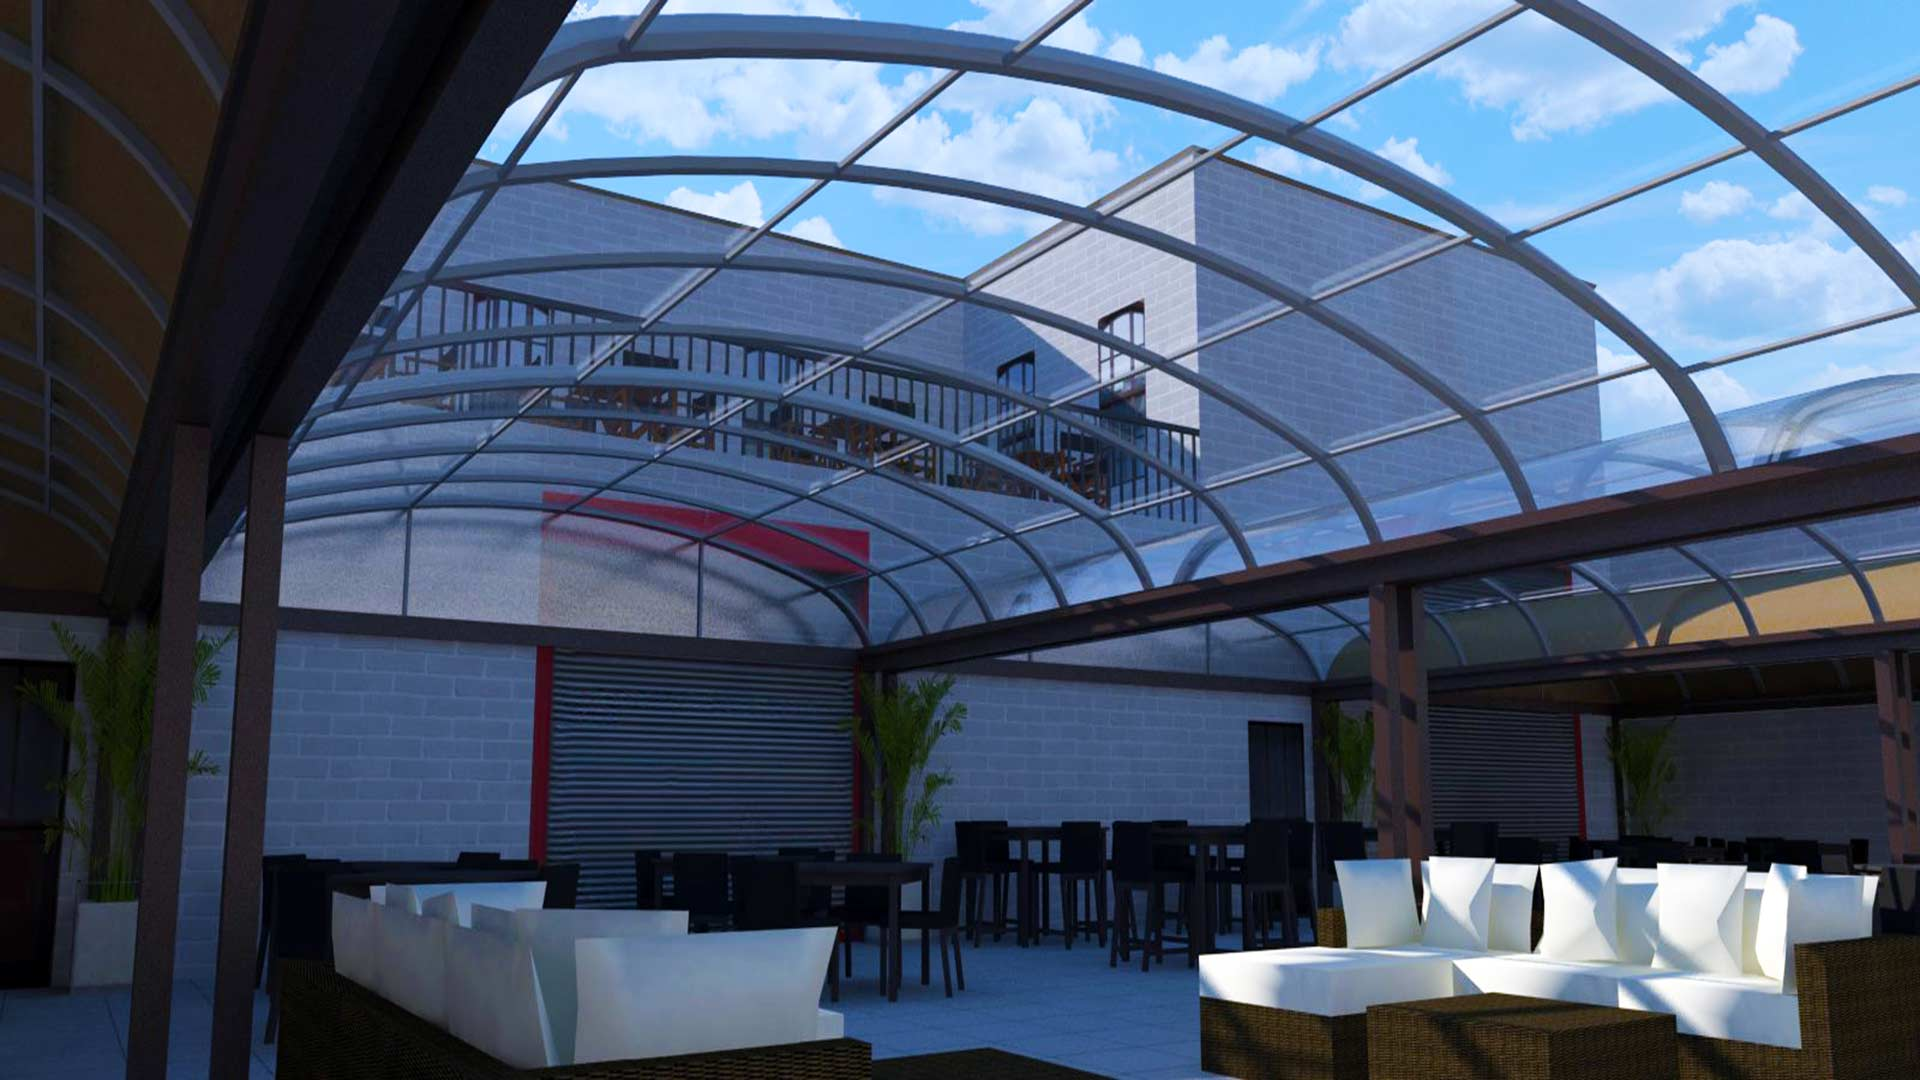 graphic transparent stock Motorized roofing in usa. Transparent roof terrace.